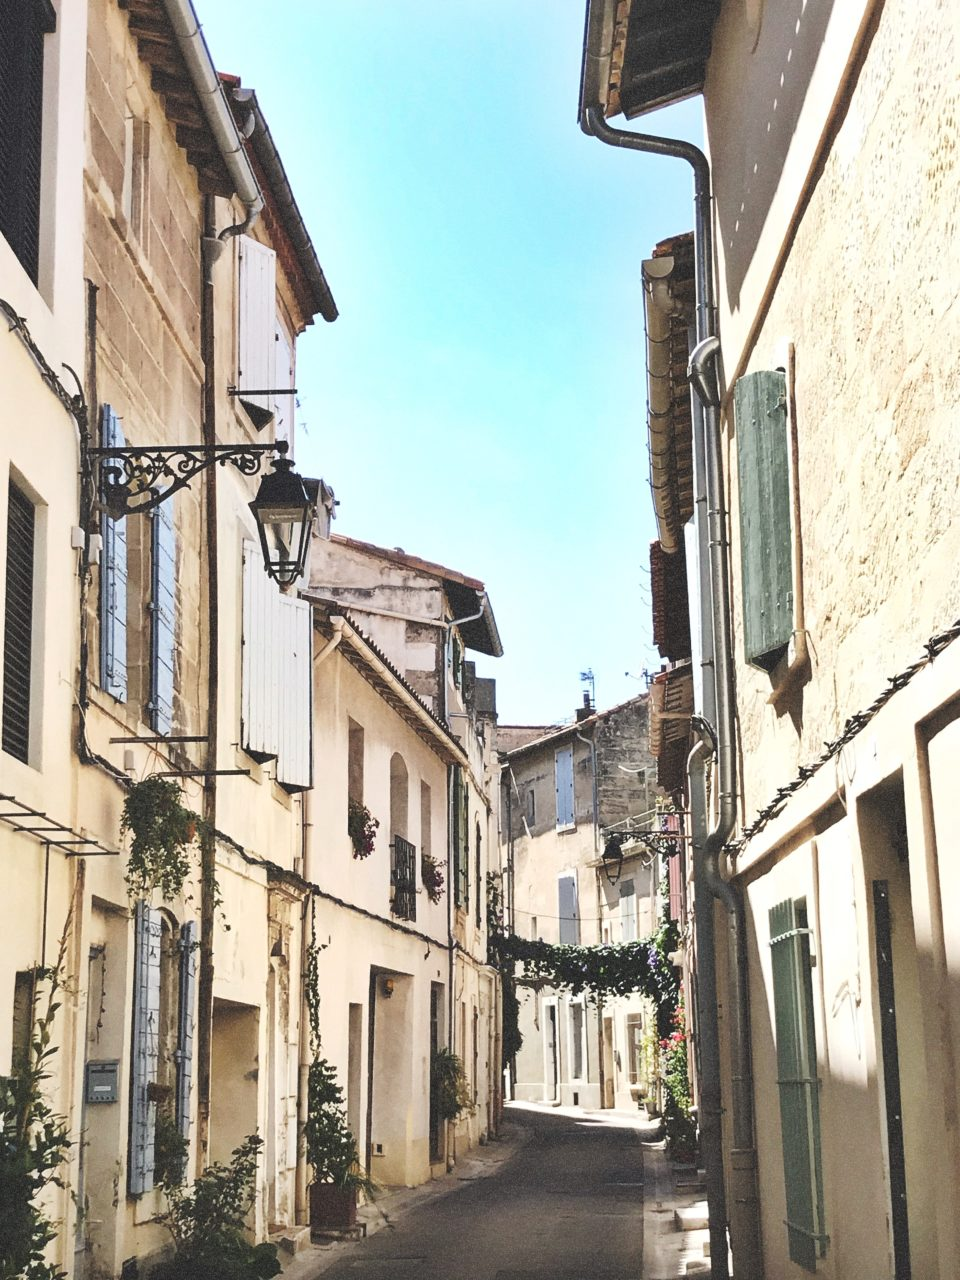 A small stree with nearby apartments in the city of Arles, South of France.